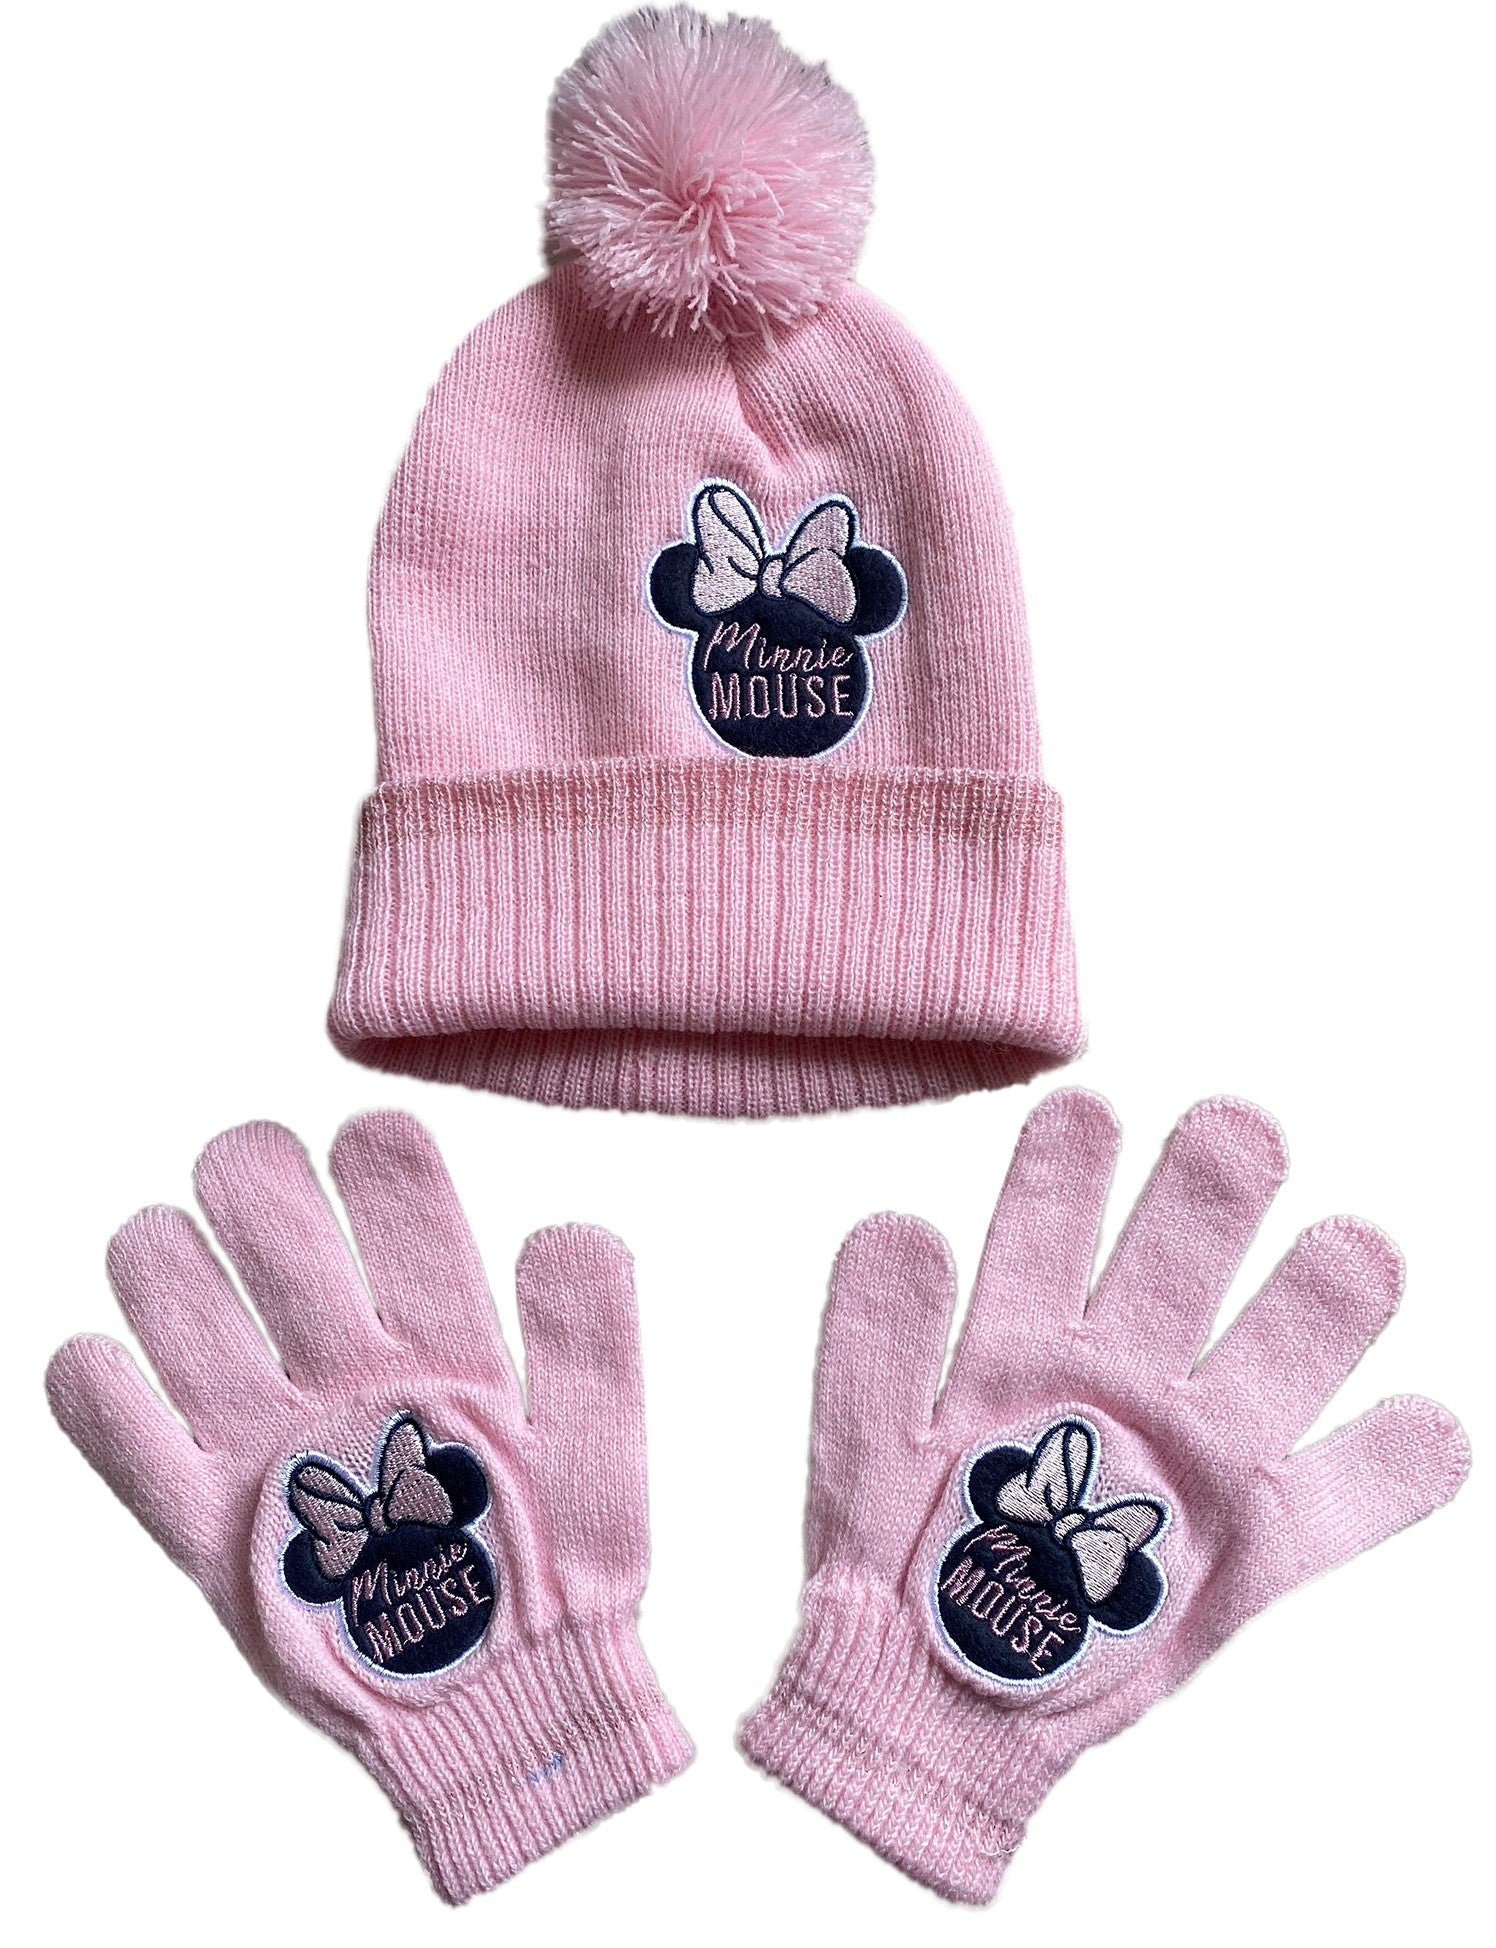 Minnie Mouse Girls Bobble Hat & Gloves Set, Thermal Pom Pom Beanie Hat and Mittens Cold Weather Set